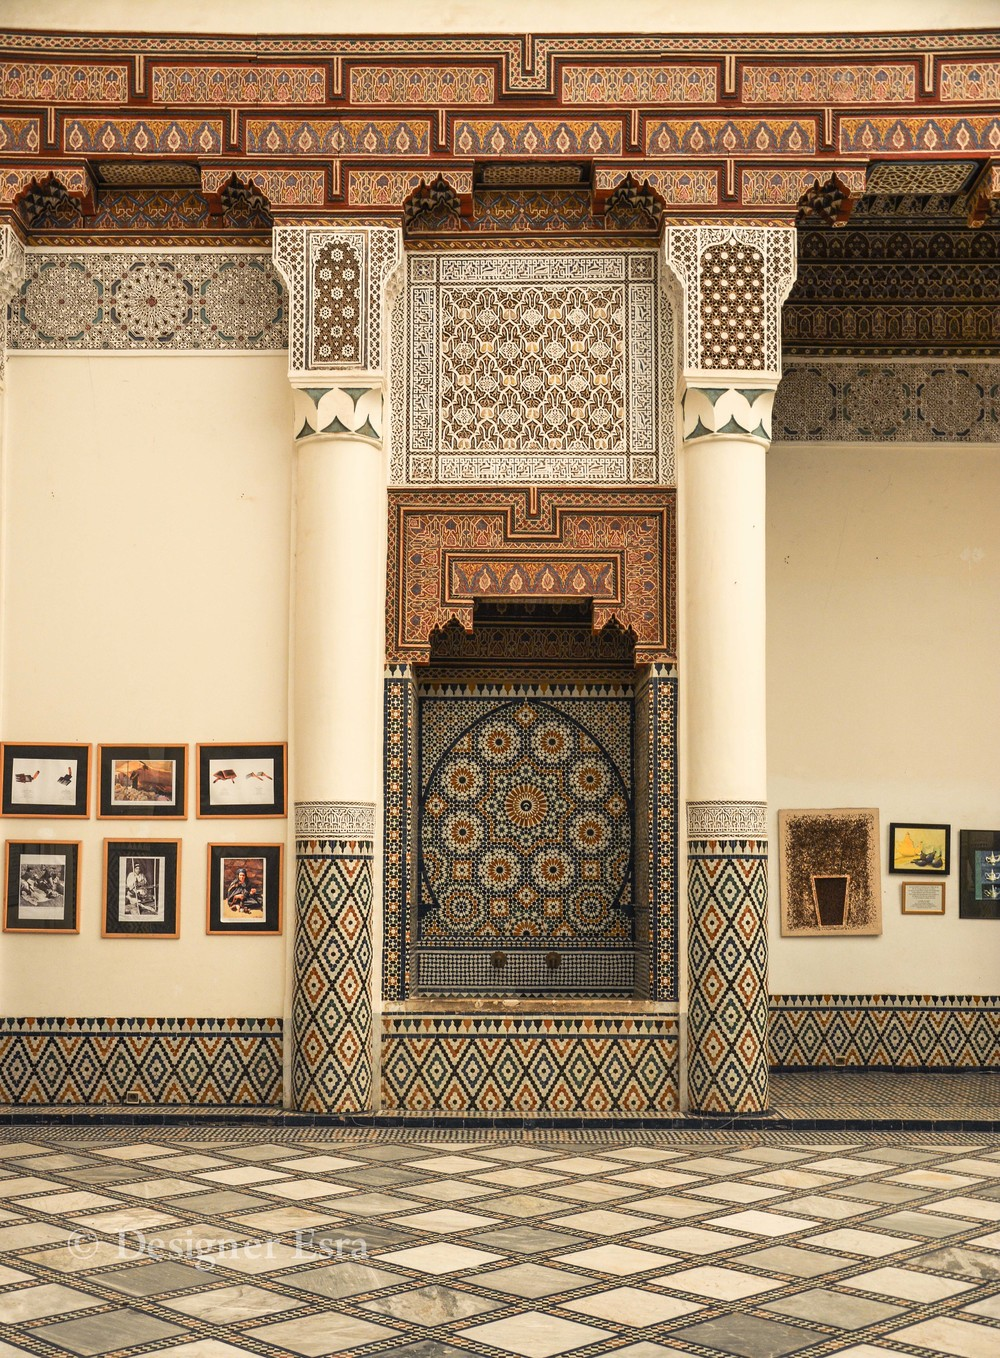 Moorish Islamic Pattern and Islamic Interior Design